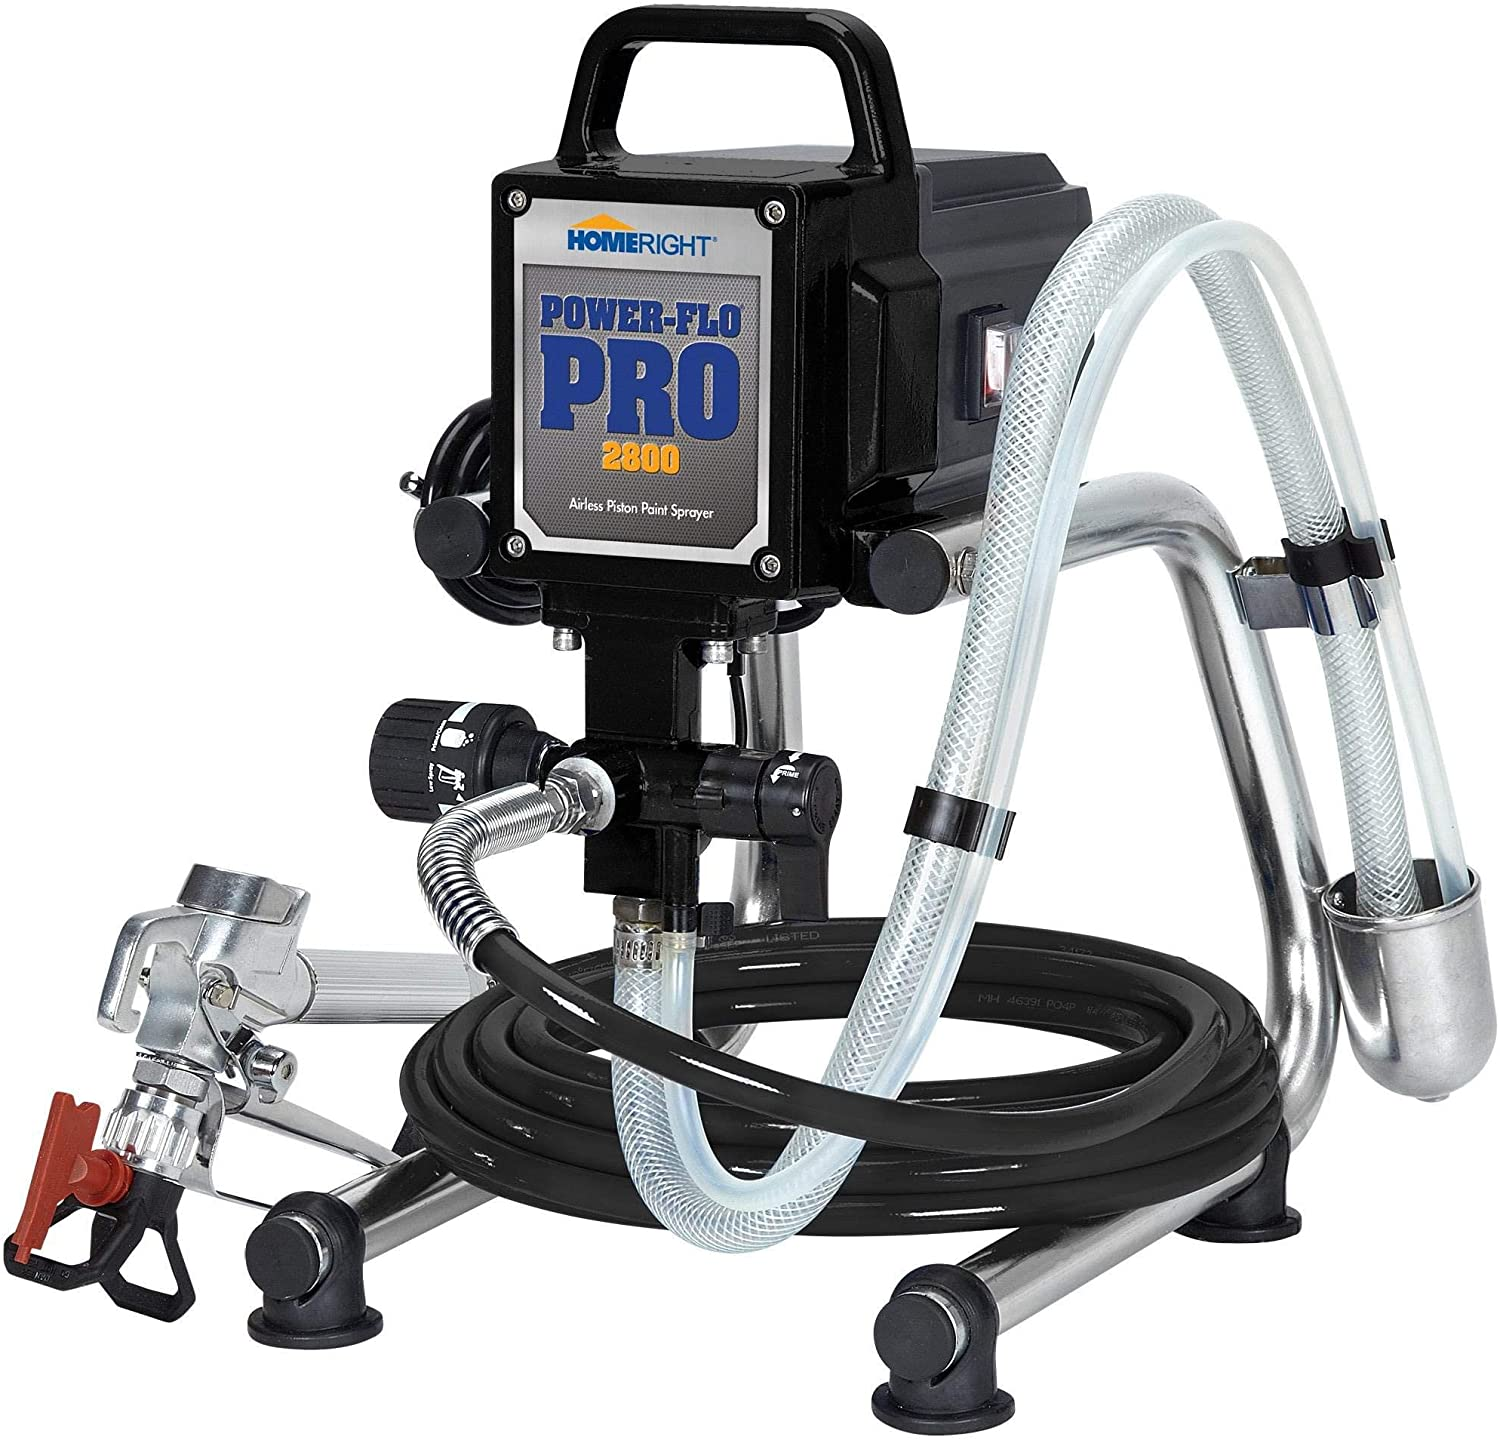 HomeRight Power Flo Pro 2800 Airless Paint Sprayer